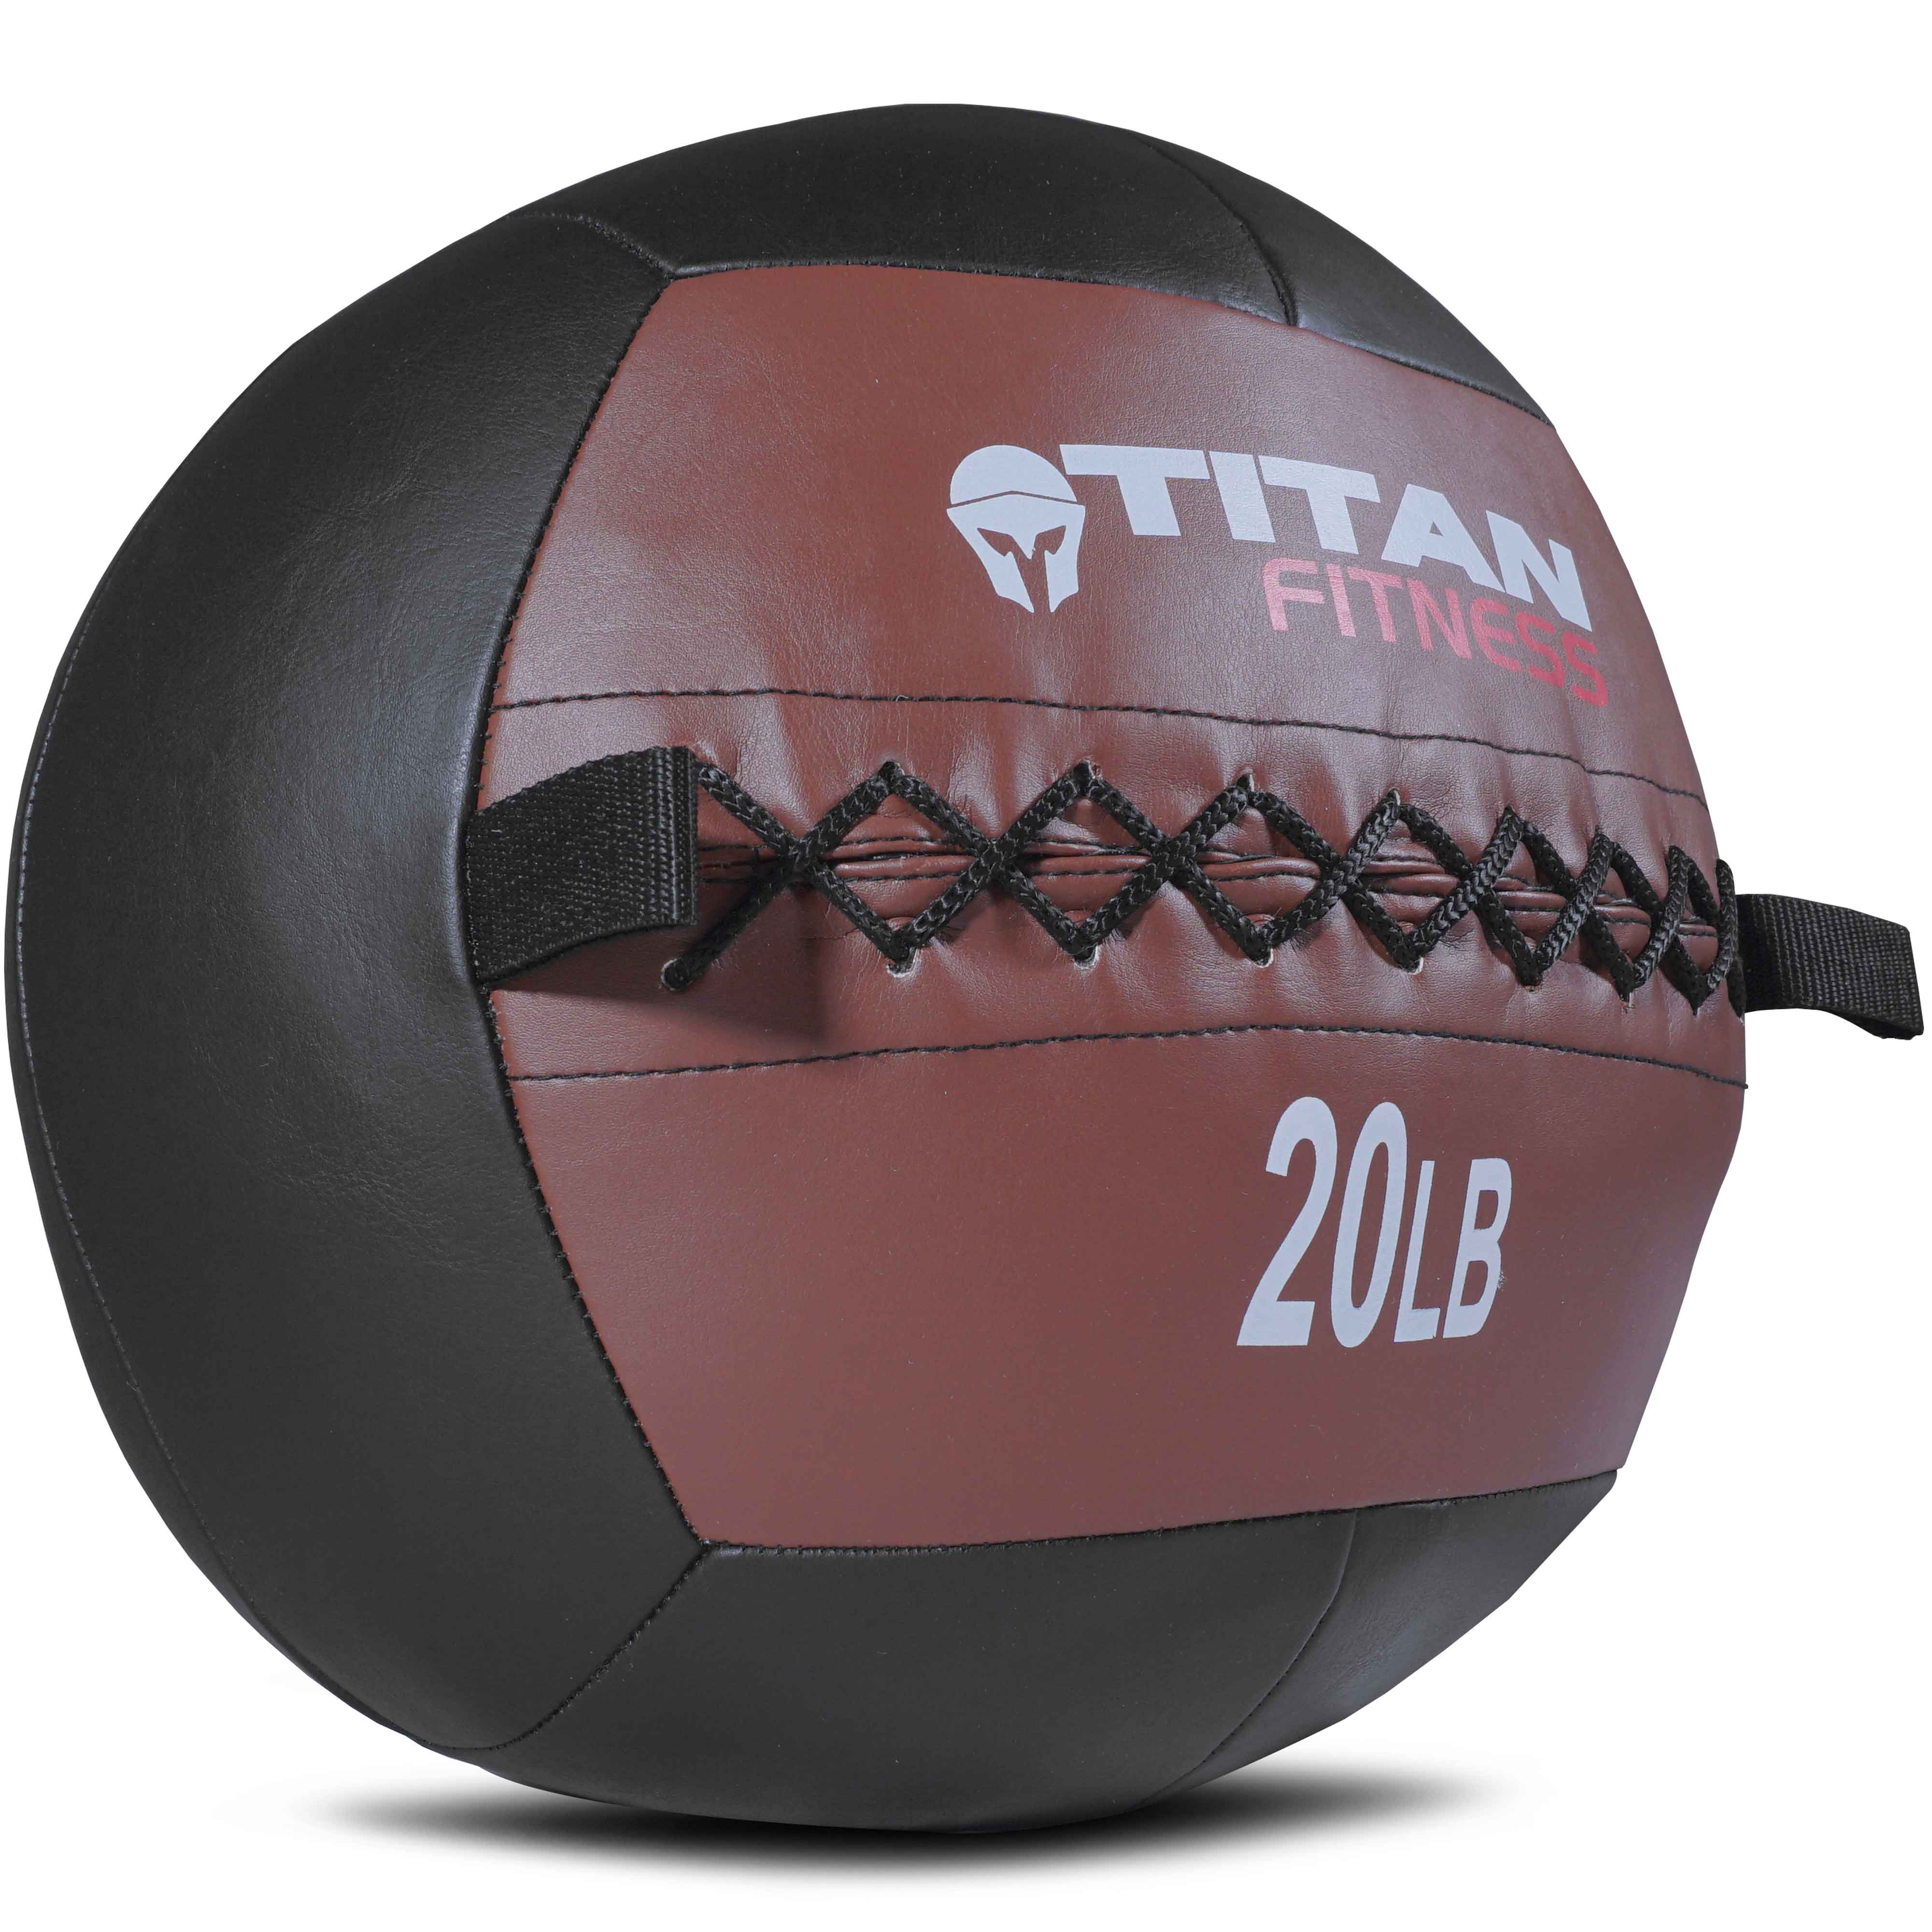 Titan 20 lb Wall Medicine Ball